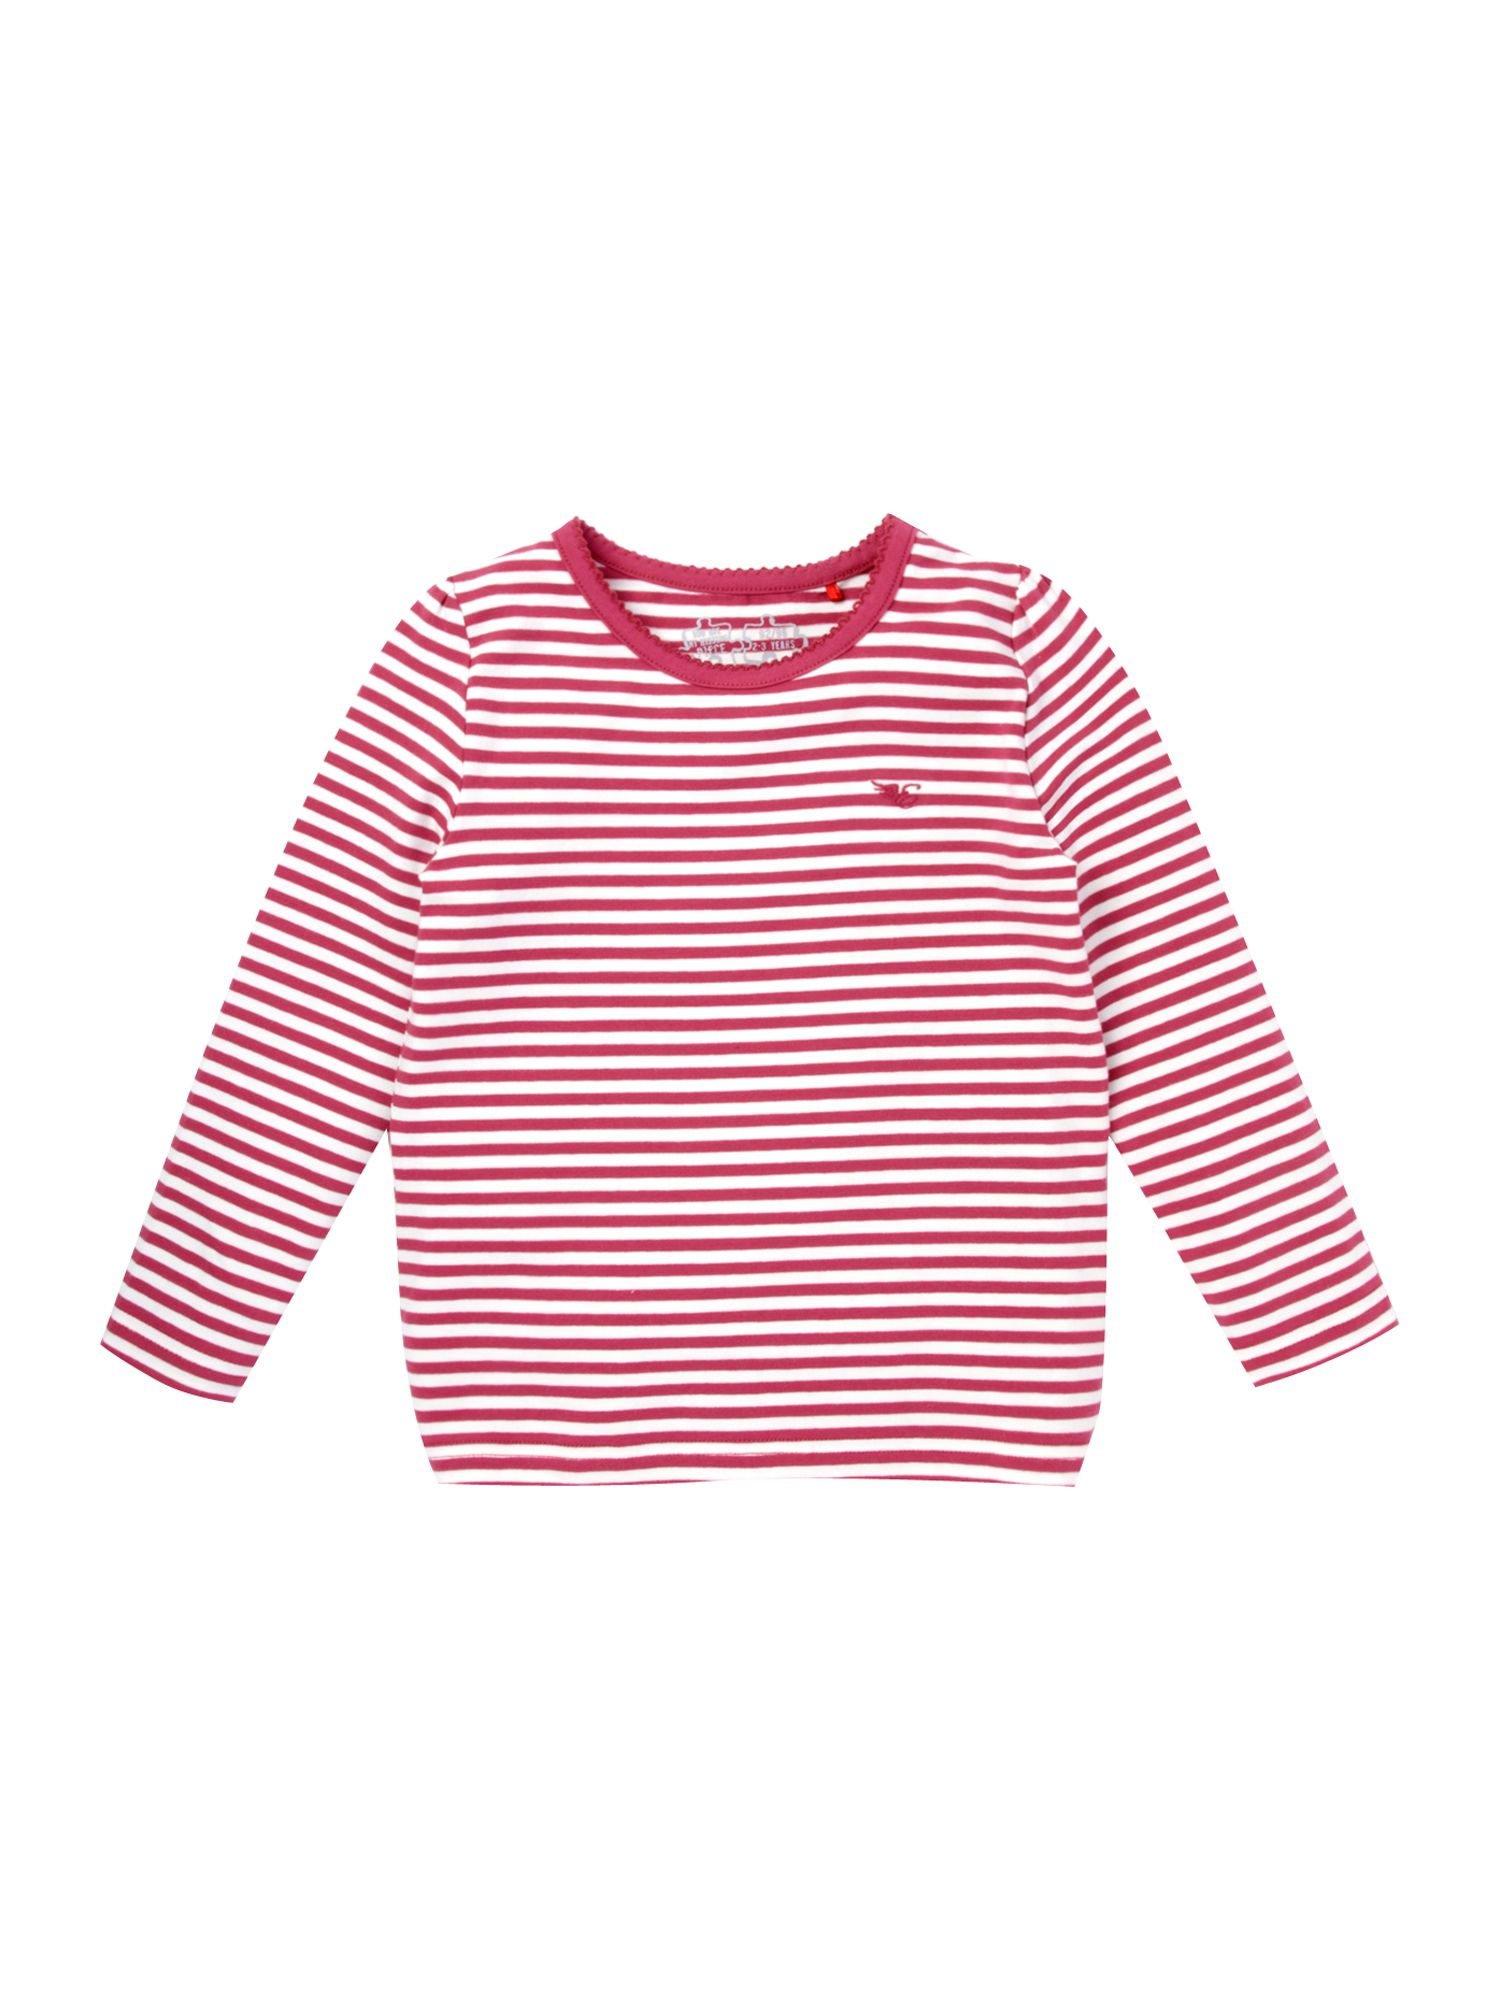 Esprit Long-sleeve striped t-shirt, Pink 163352522 product image